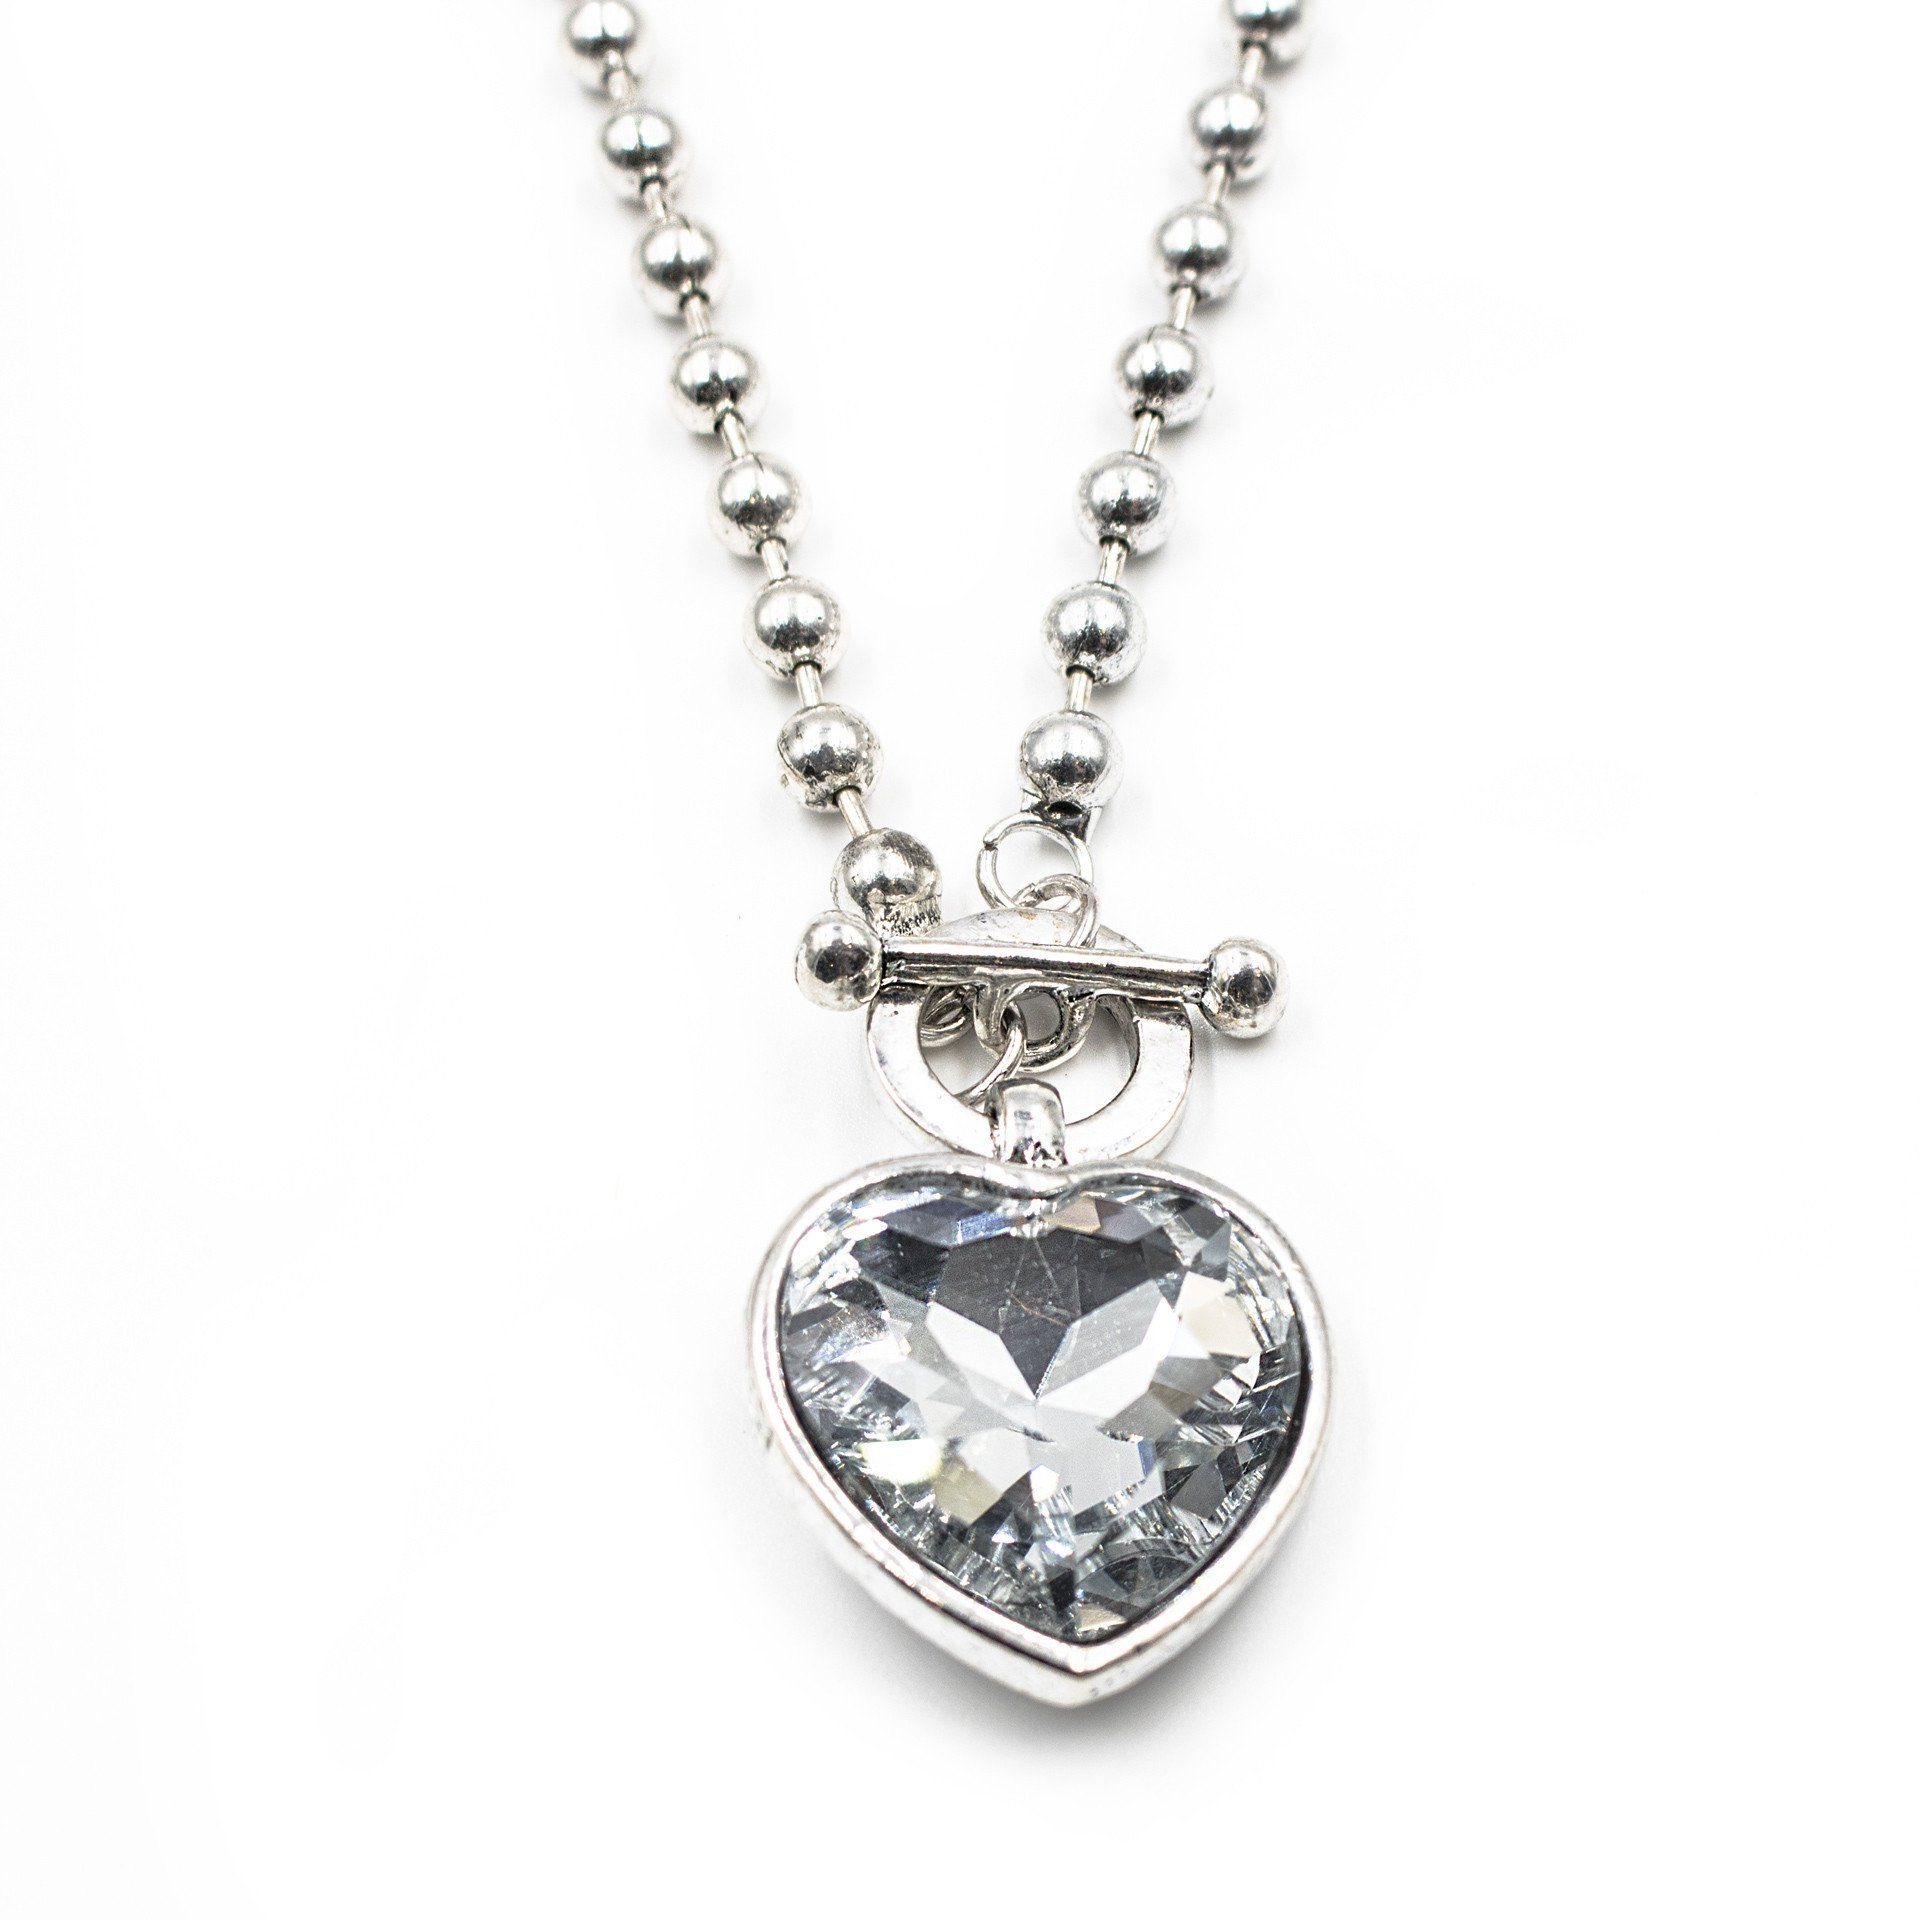 'Classic Heart Locker' Necklace - Arlo and Arrows